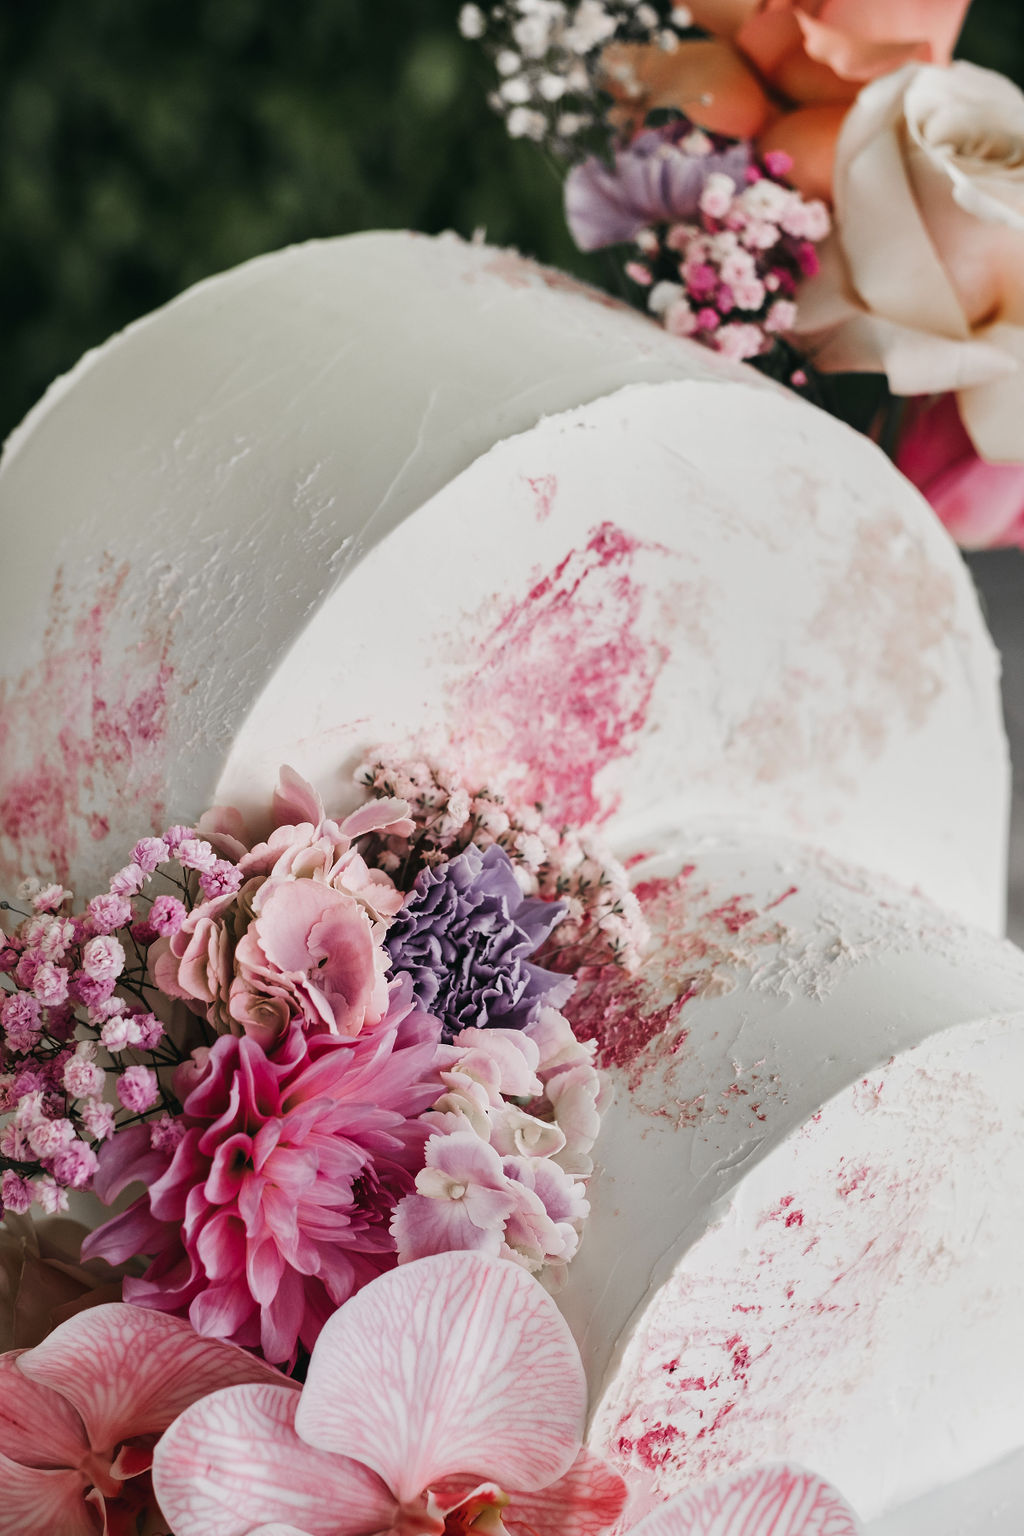 images by will and co golding wines weddings venue florals cake stationery and more